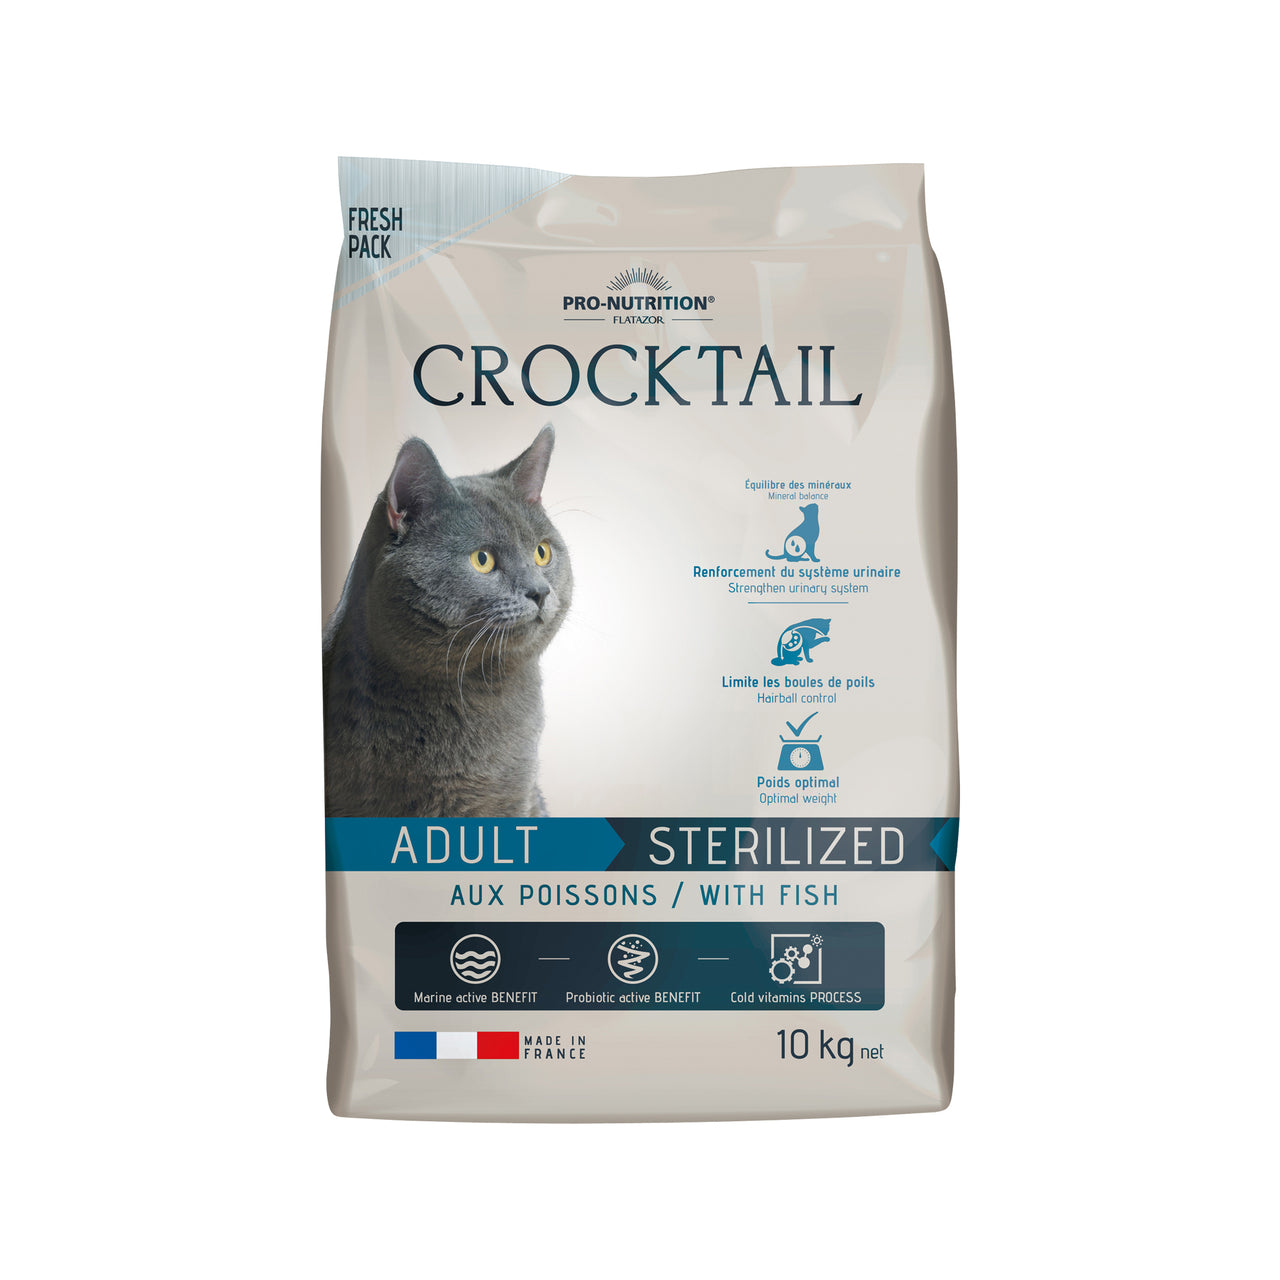 Crocktail Adult Sterilized Fish 10kg